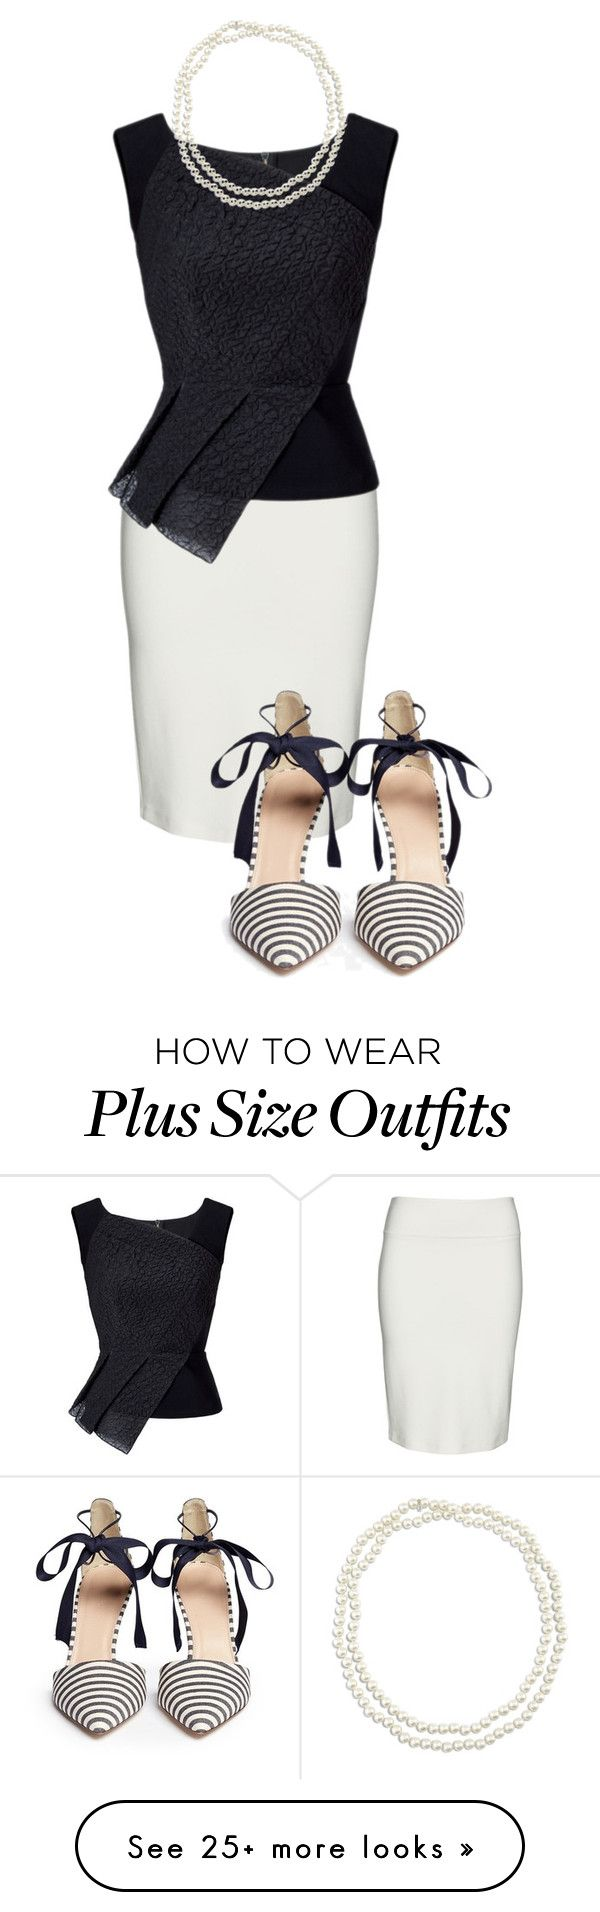 """what's the scoop?"" by barbielish on Polyvore featuring Yoek, Roland Mouret, J.Crew and Chico's"